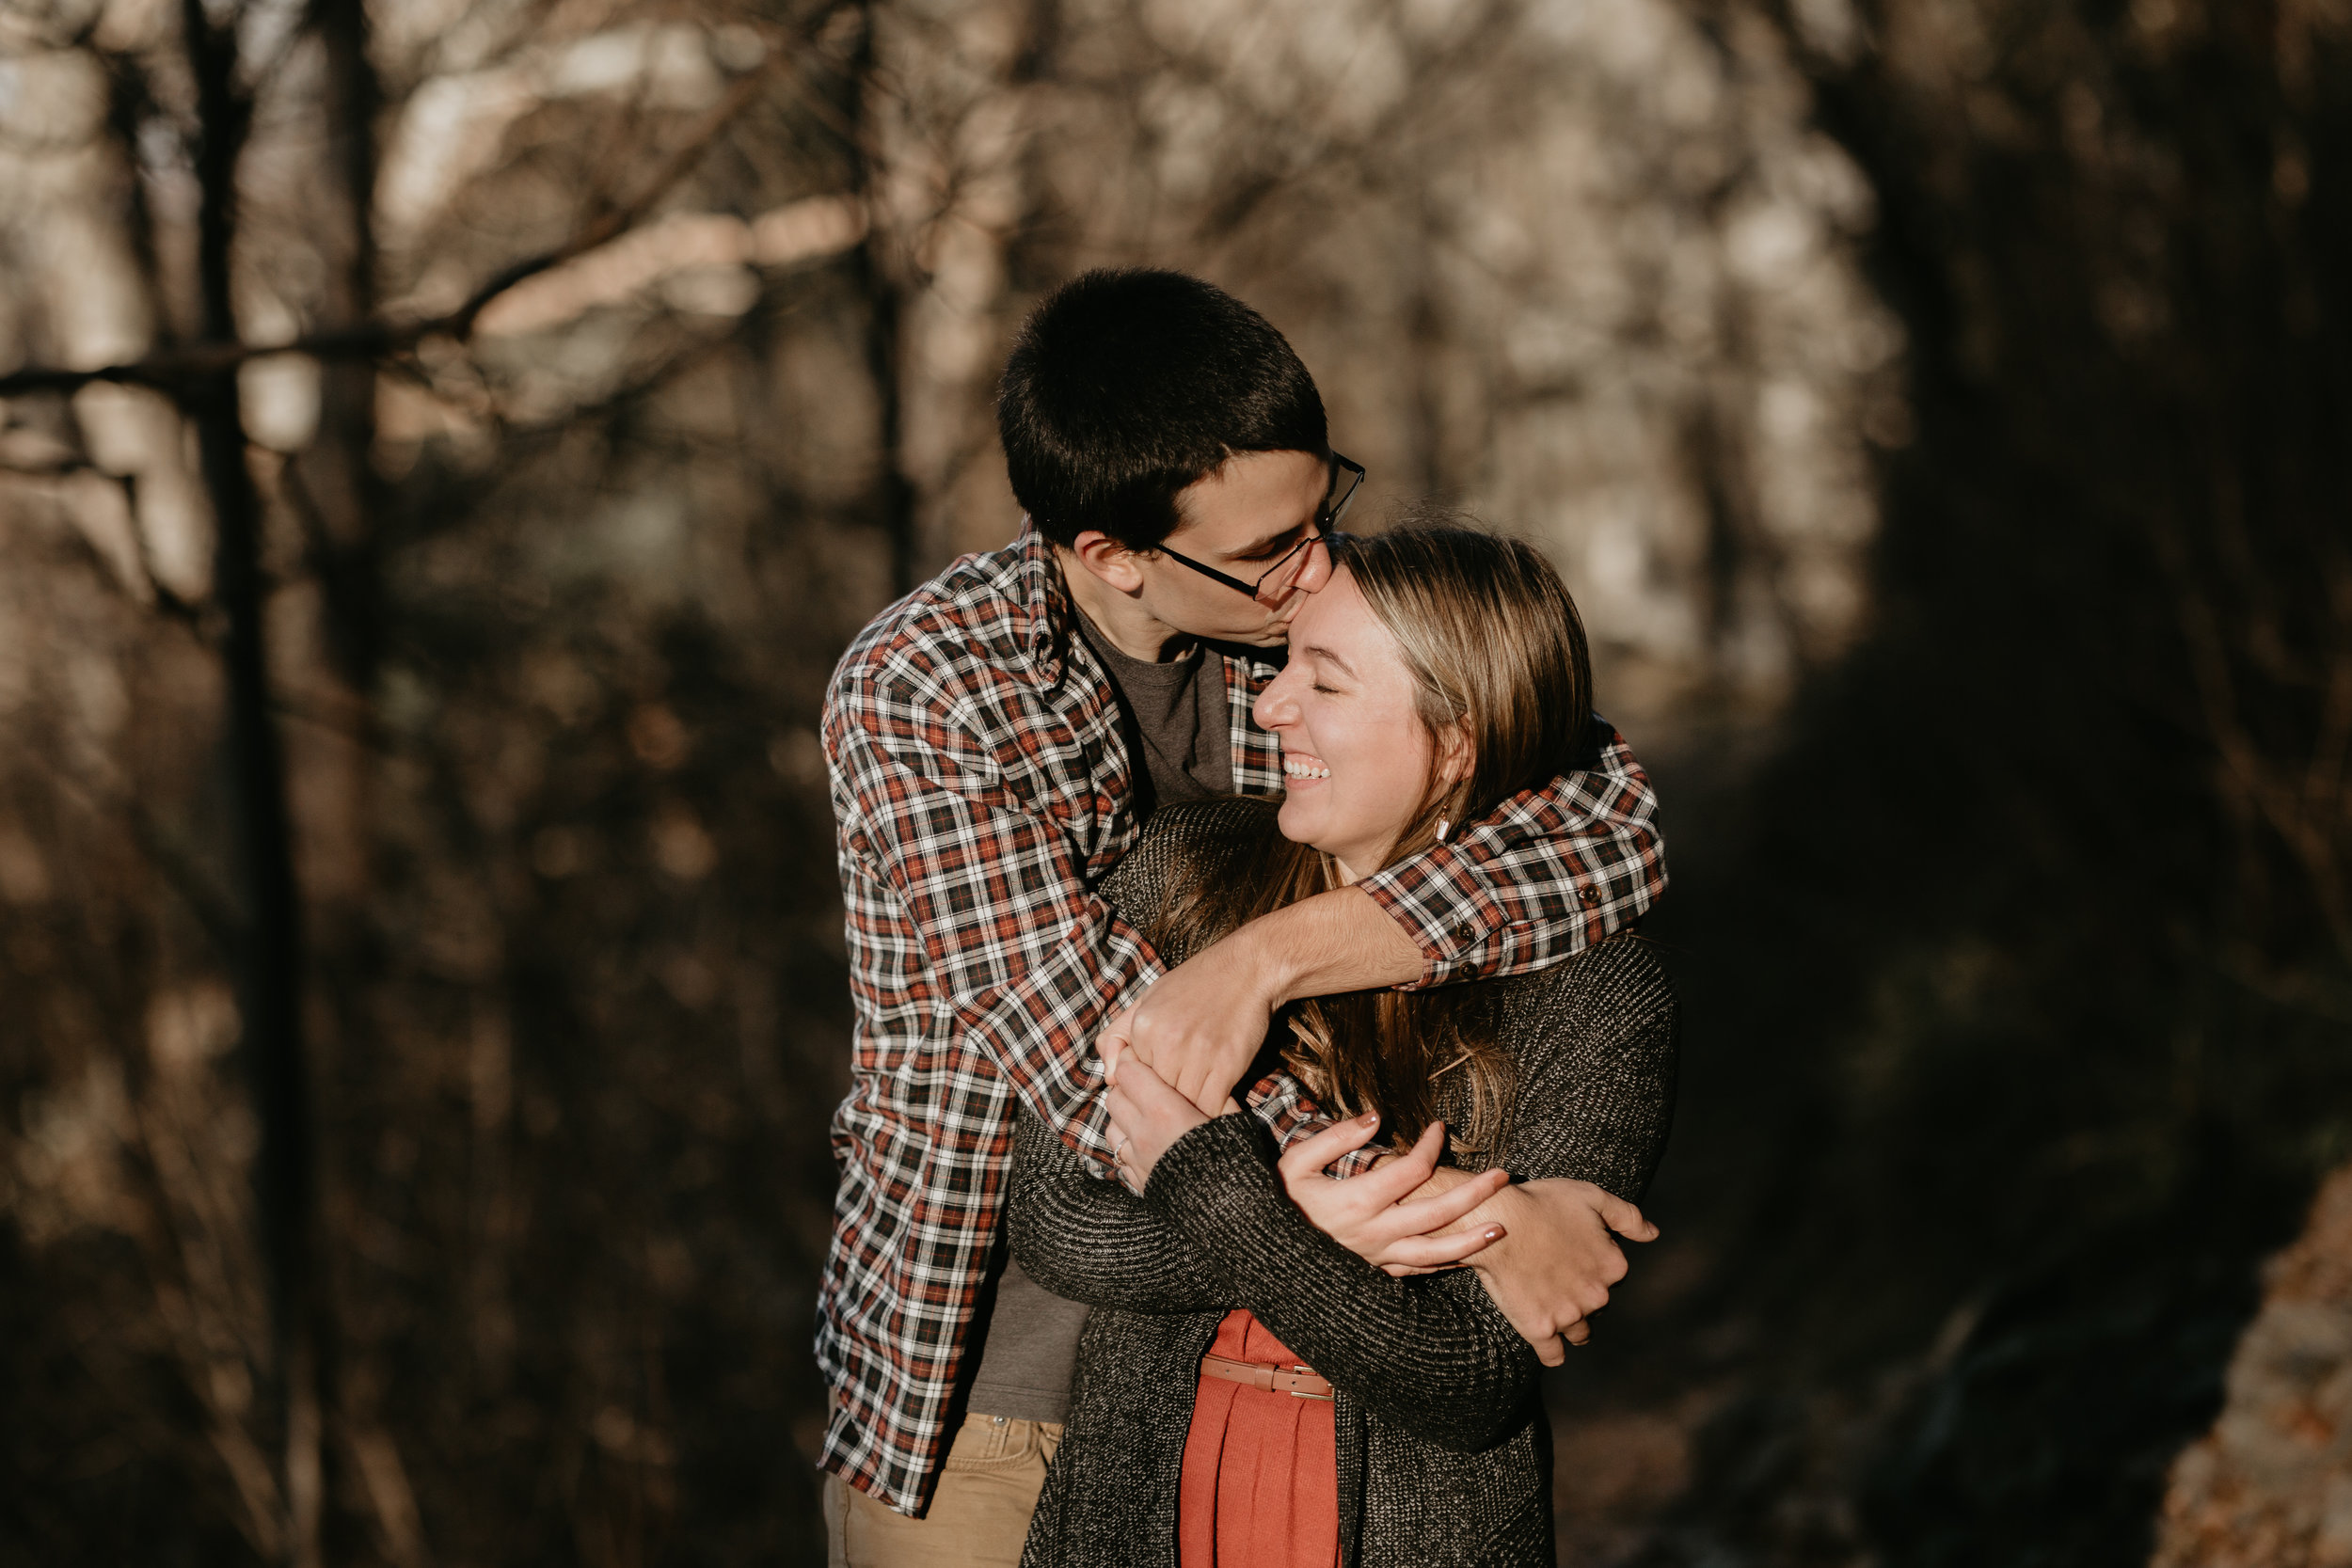 nicole-daacke-photography-shenandoah-national-park-adventure-engagement-session-with-fall-foliage-shenandoah-elopement-photographer-engagement-photos-in-virginia-charlottesville-national-park-adventure-elopement-photographer-3673.jpg